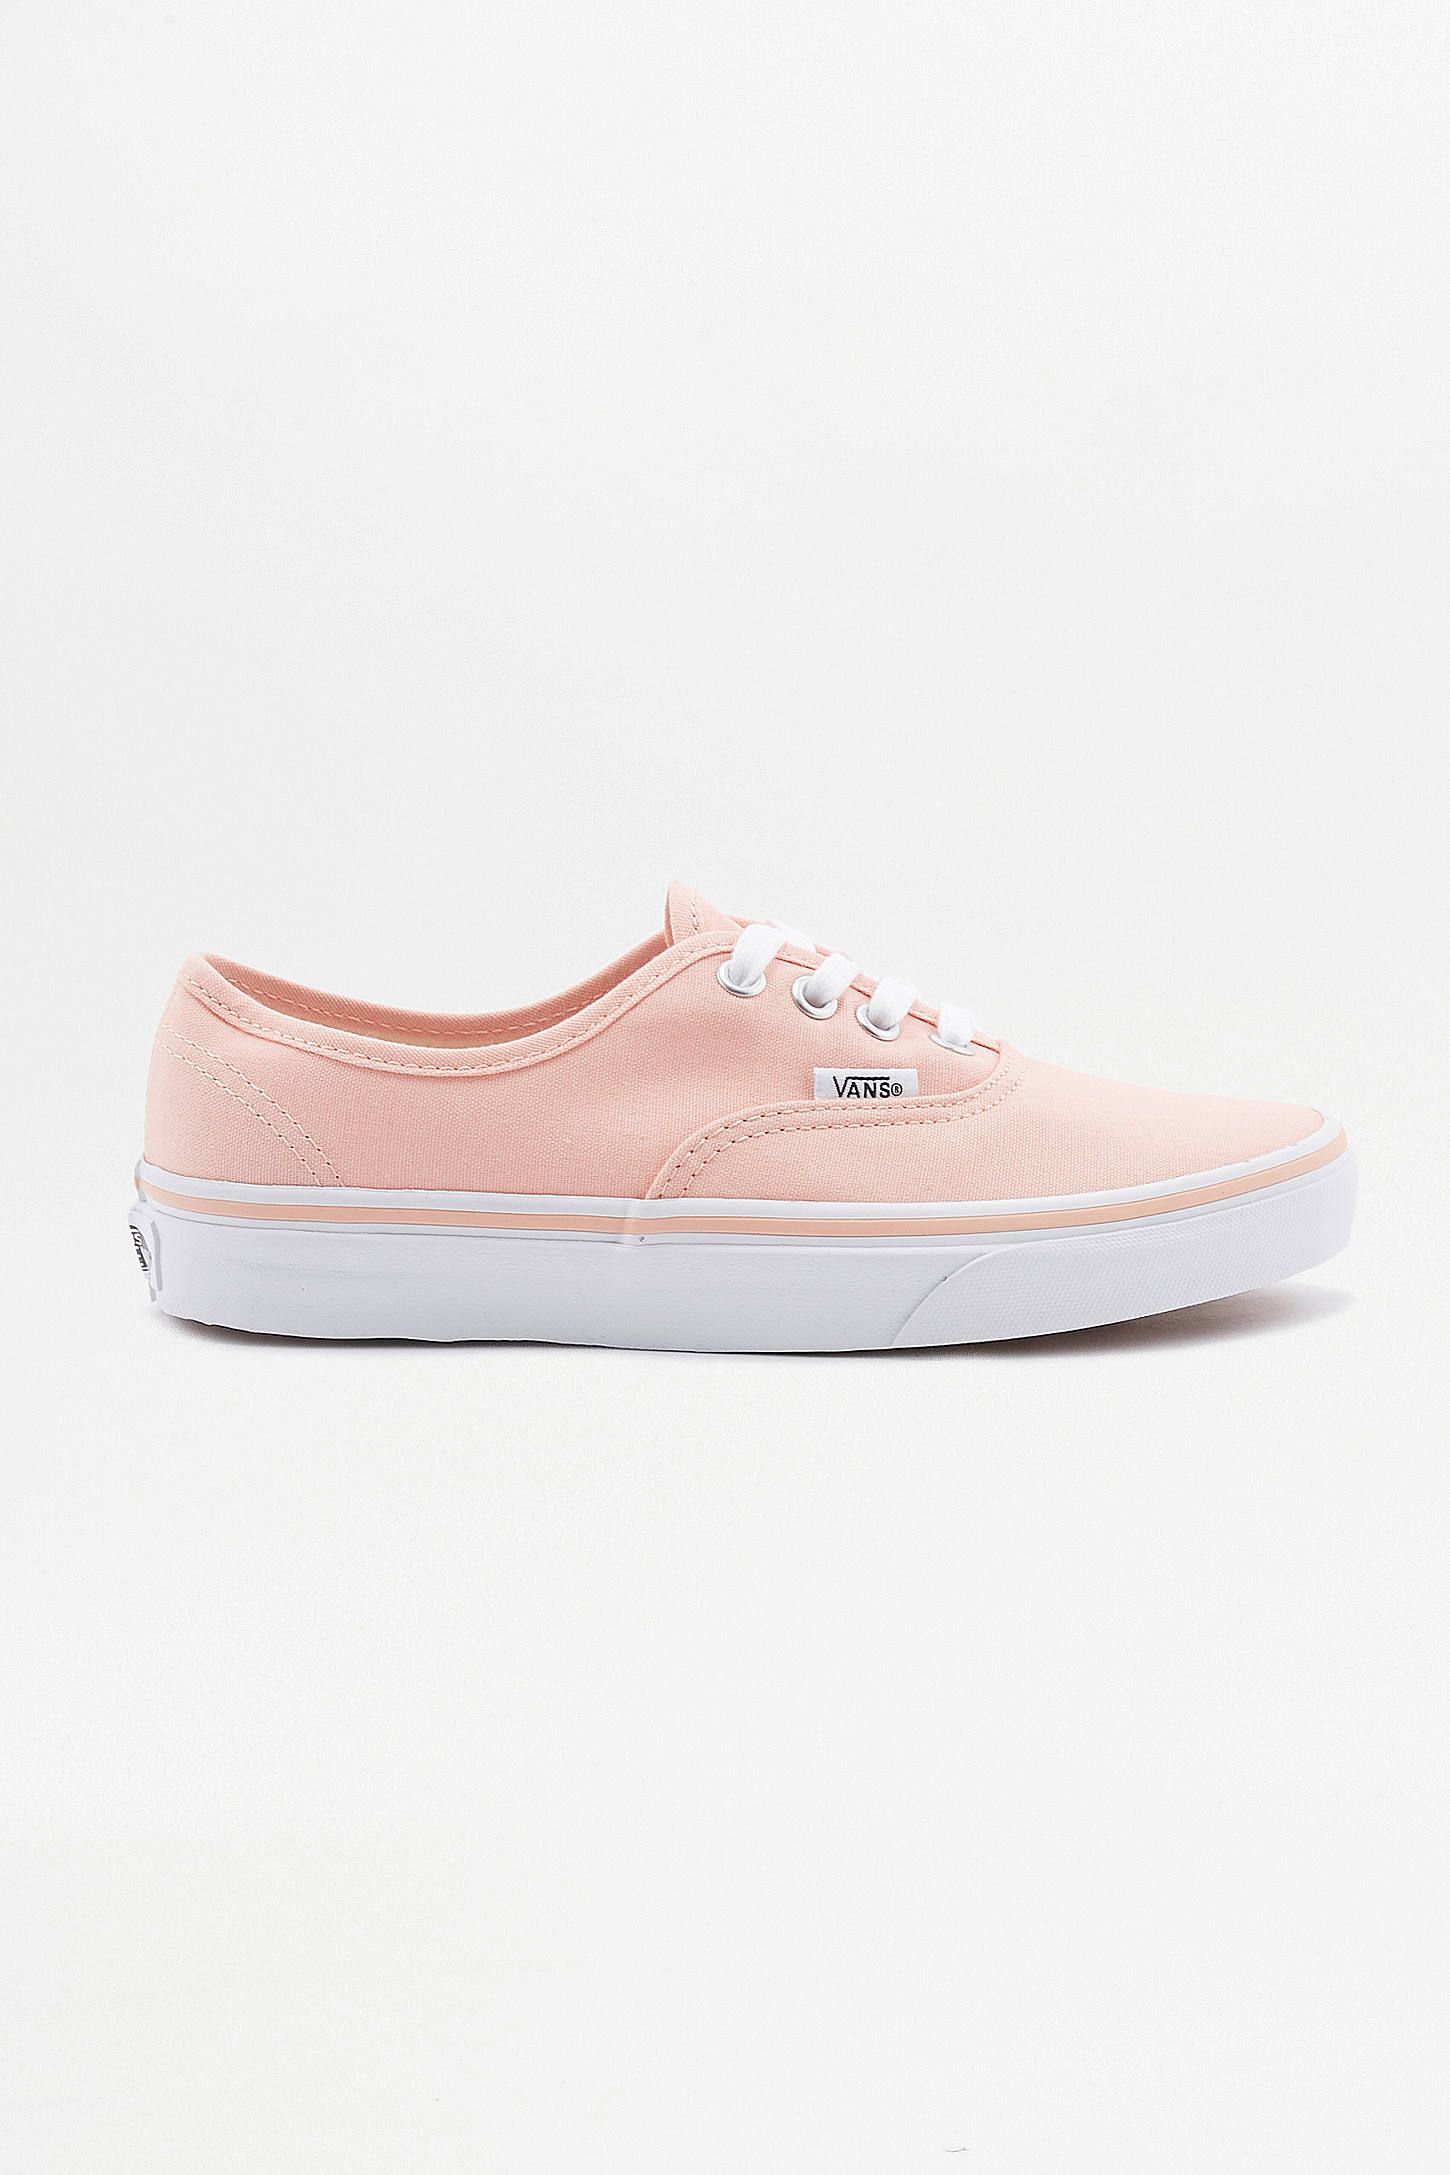 vans authentic peach